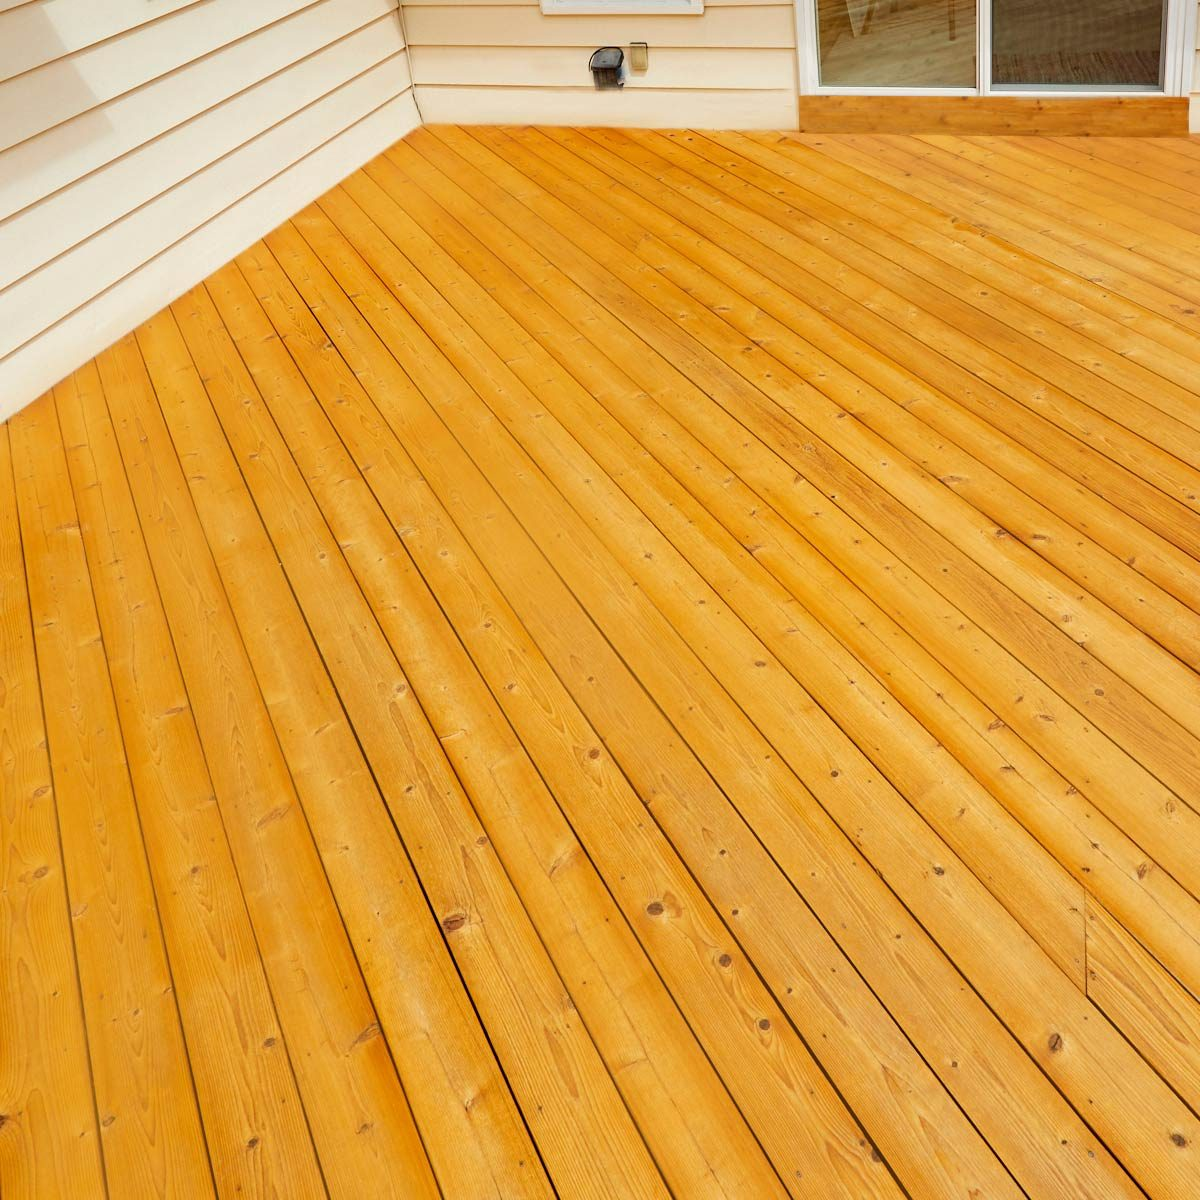 The Right Deck Stain Can Bring Out Natural Beauty Of S Wood Grain And Extend Its Life By Protecting It Against Sun Water Damage